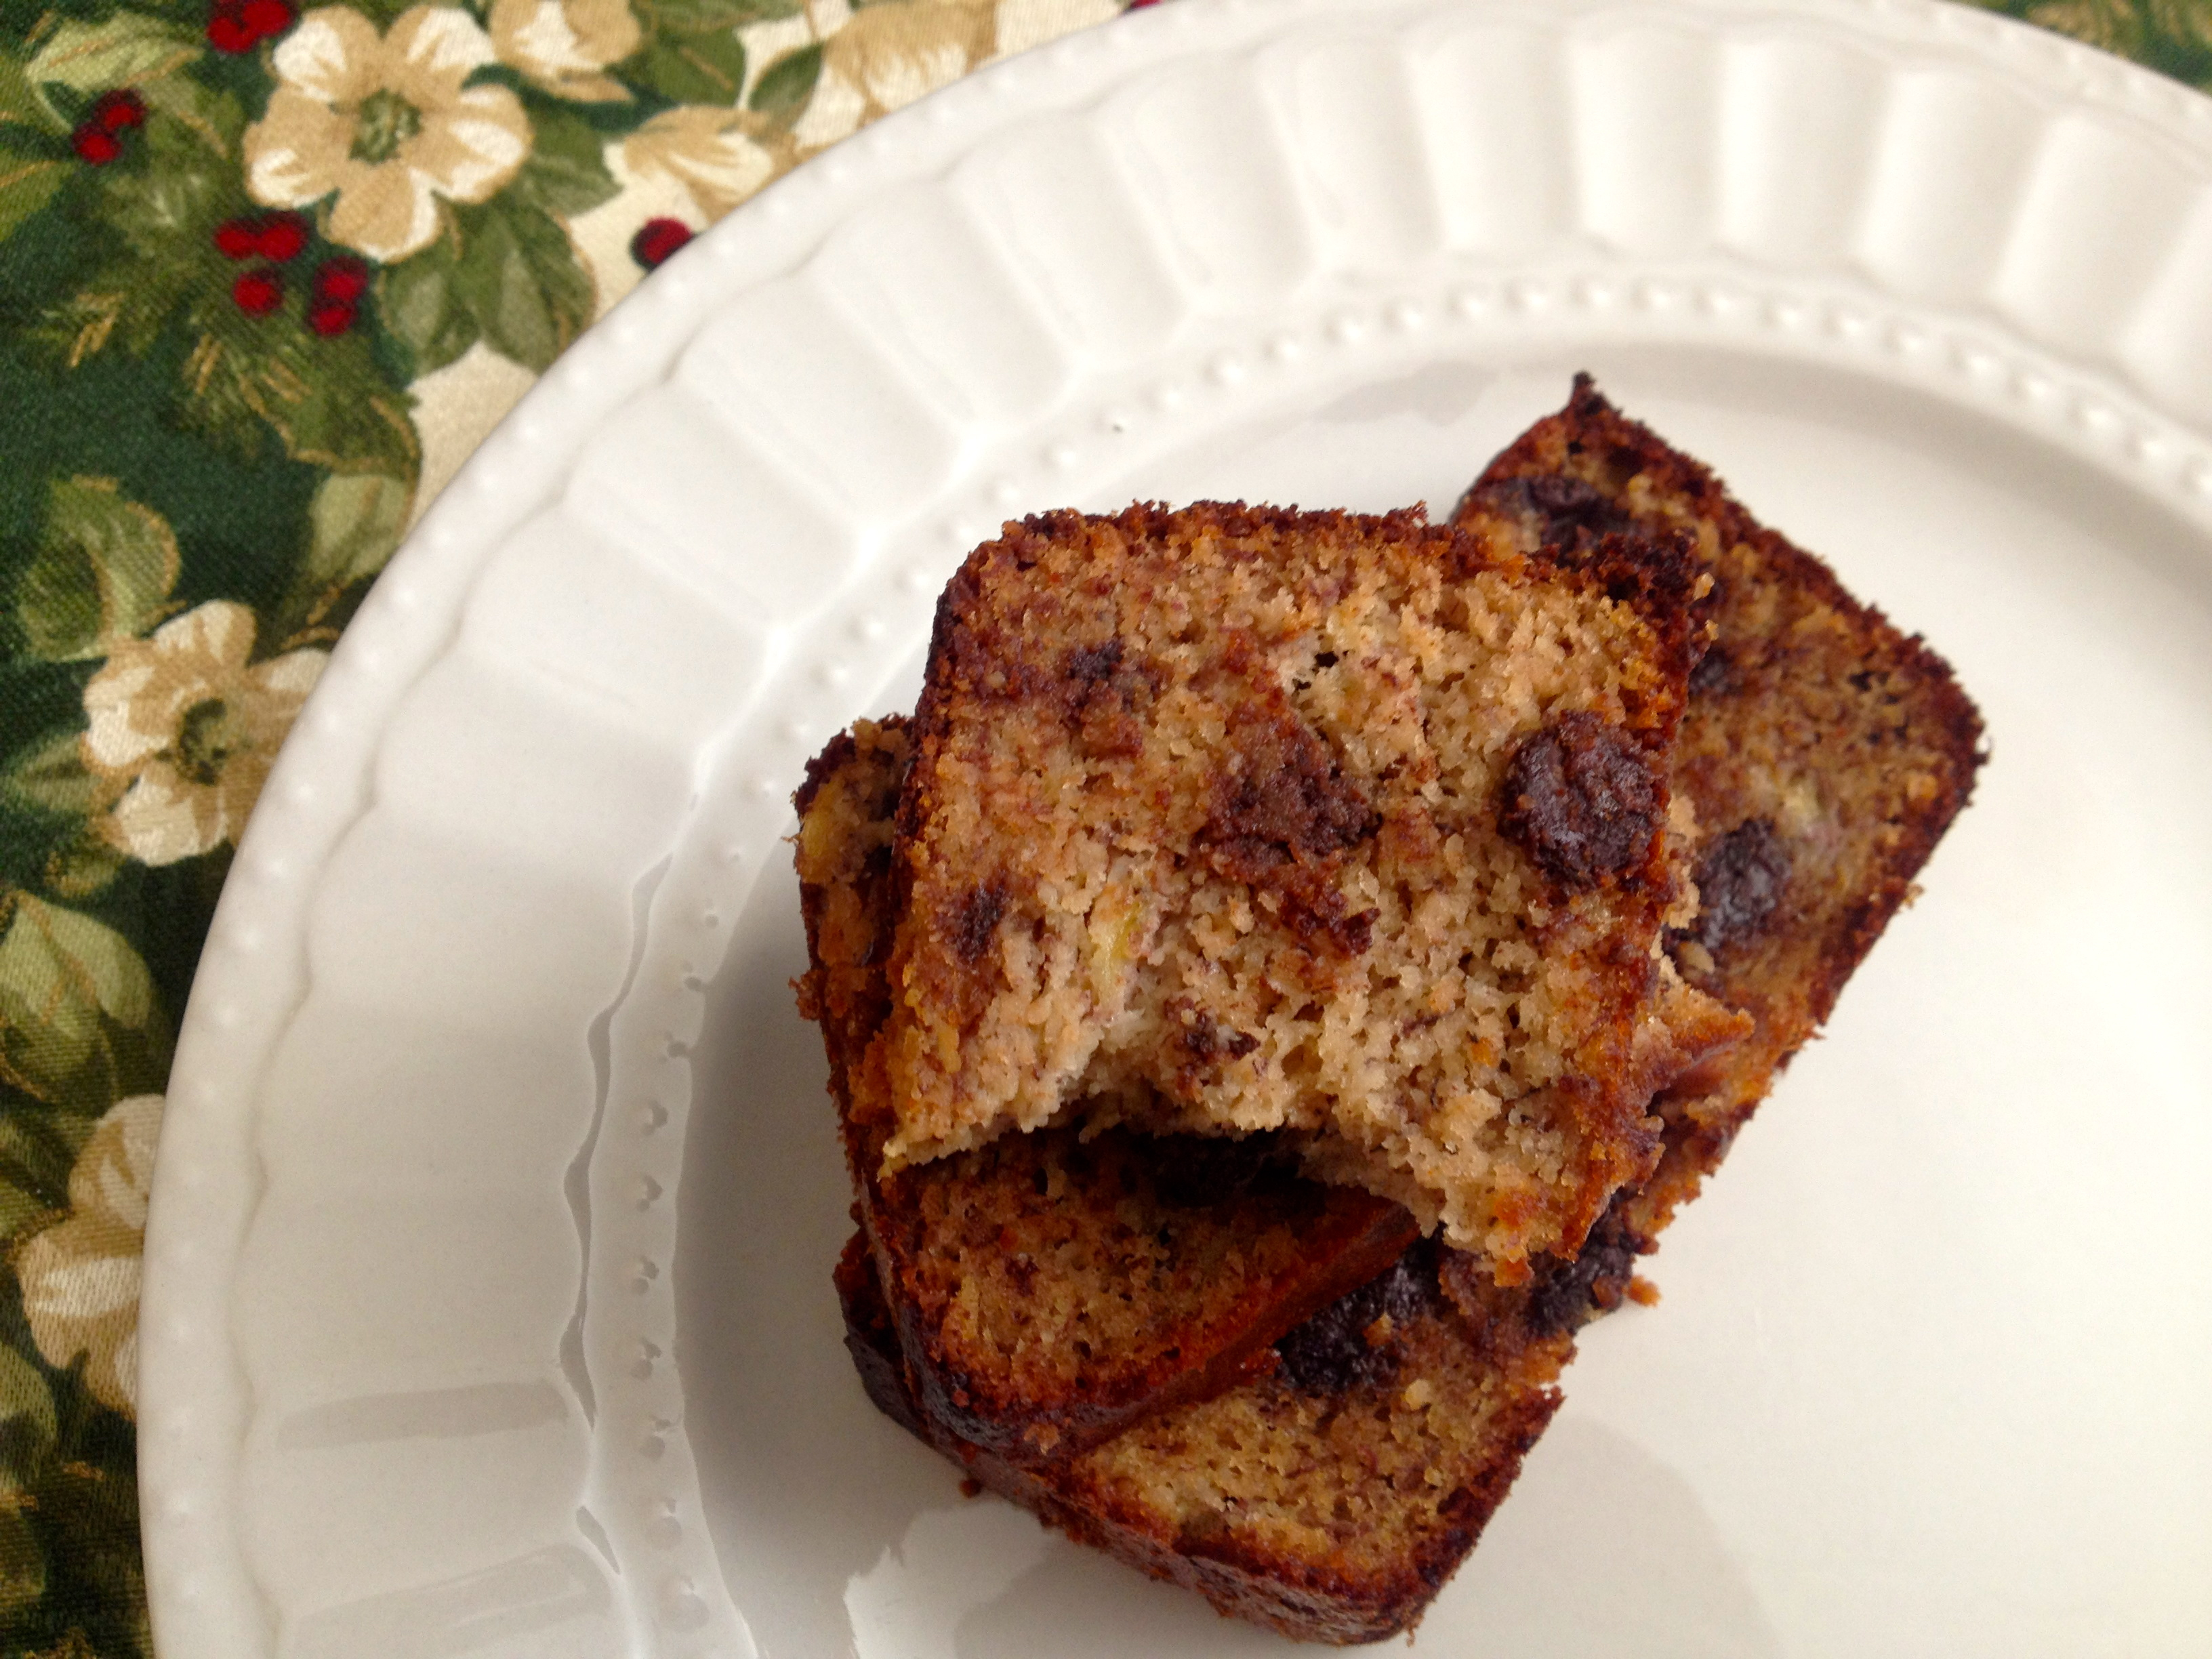 paleo-chocolate-chip-banana-bread5